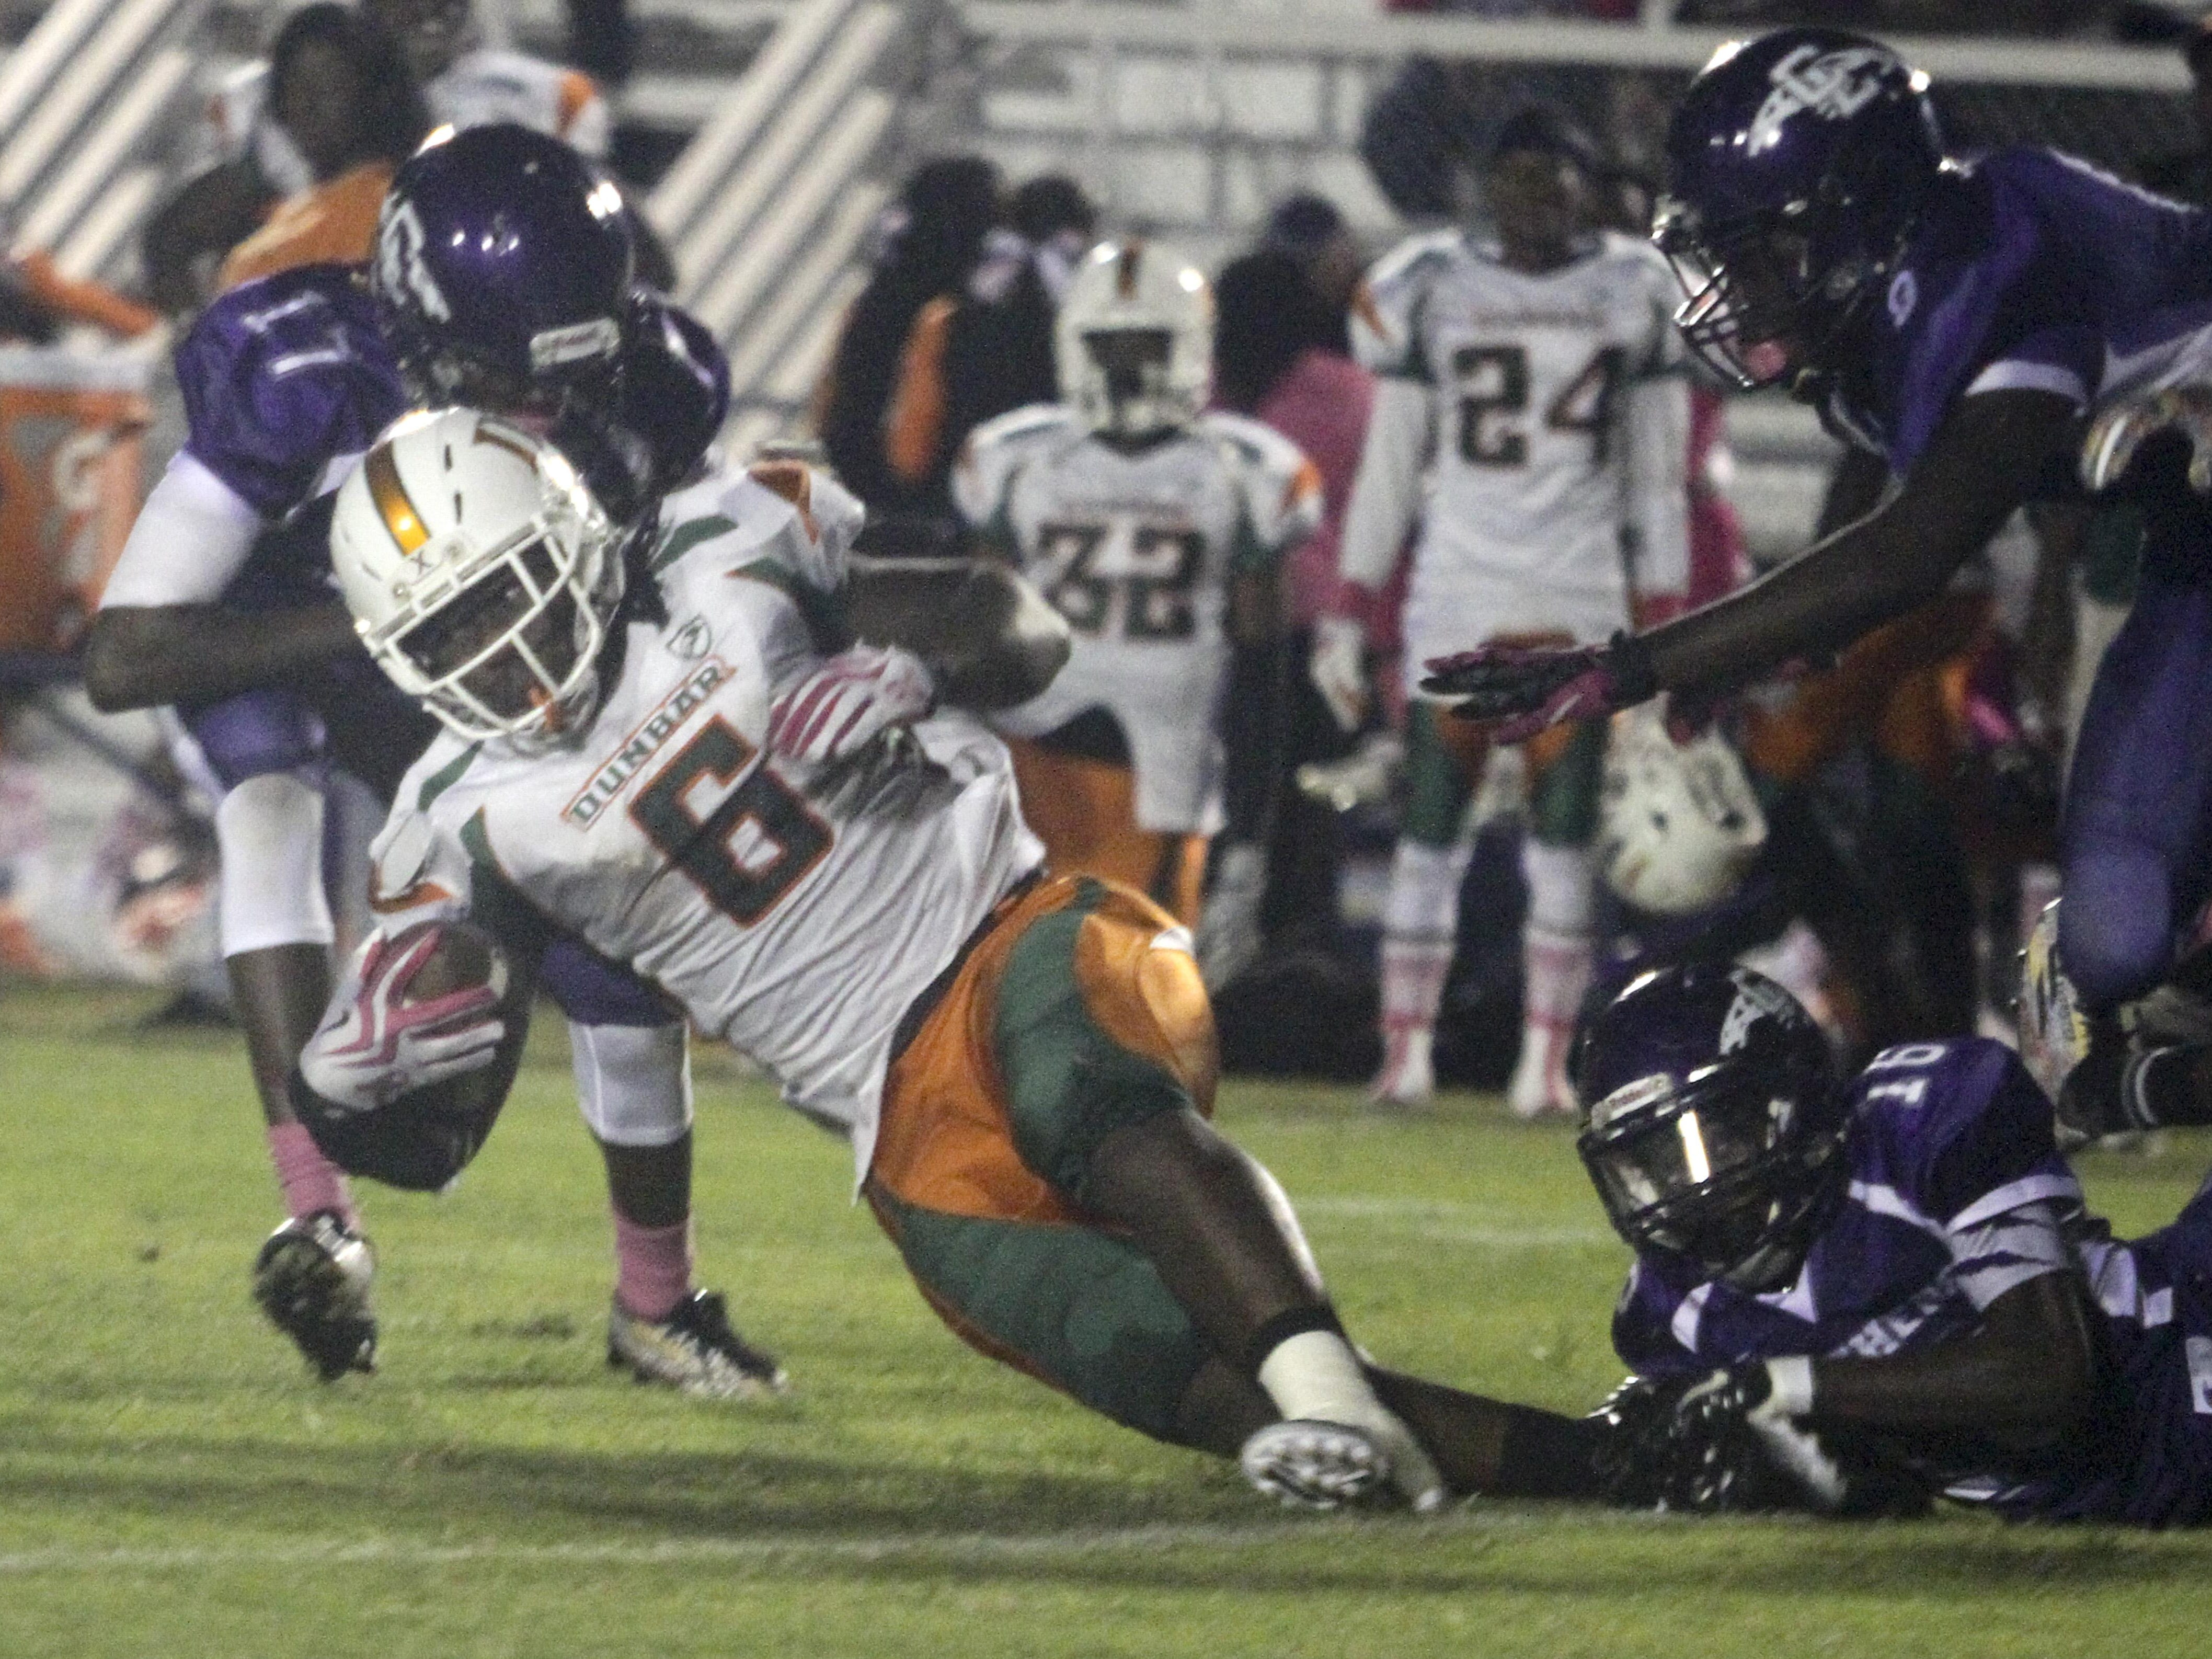 Dunbar's Abraham Alce runs the ball against Cypress Lake. Alce finished with 206 yards and a touchdown.